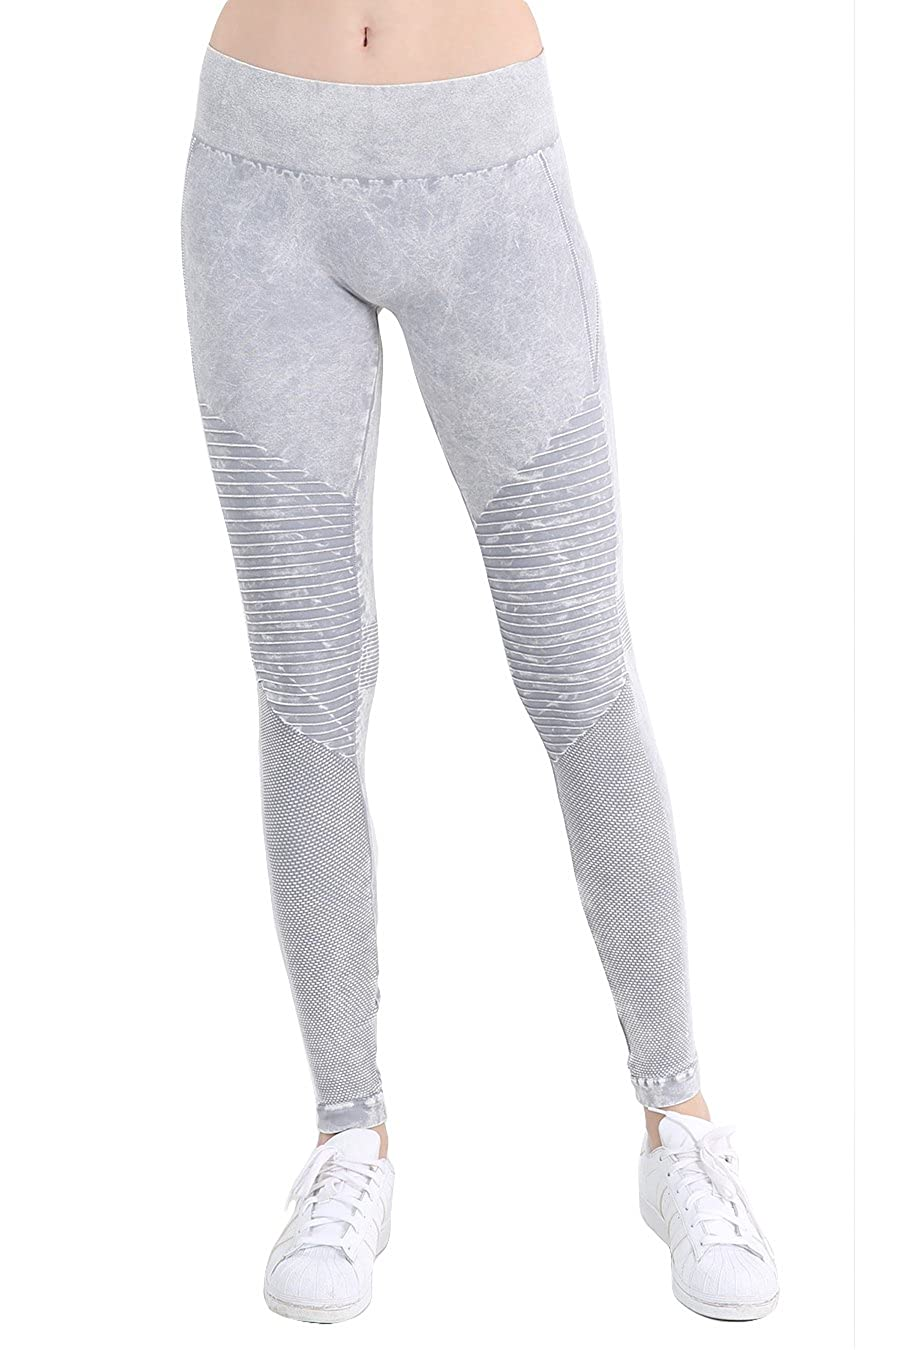 b09e96388ffeca 92% Nylon/8% Spandex 100% QUALITY GUARANTEE - We take great pride in  providing top notch quality leggings that were manufactured in-house made  in USA.